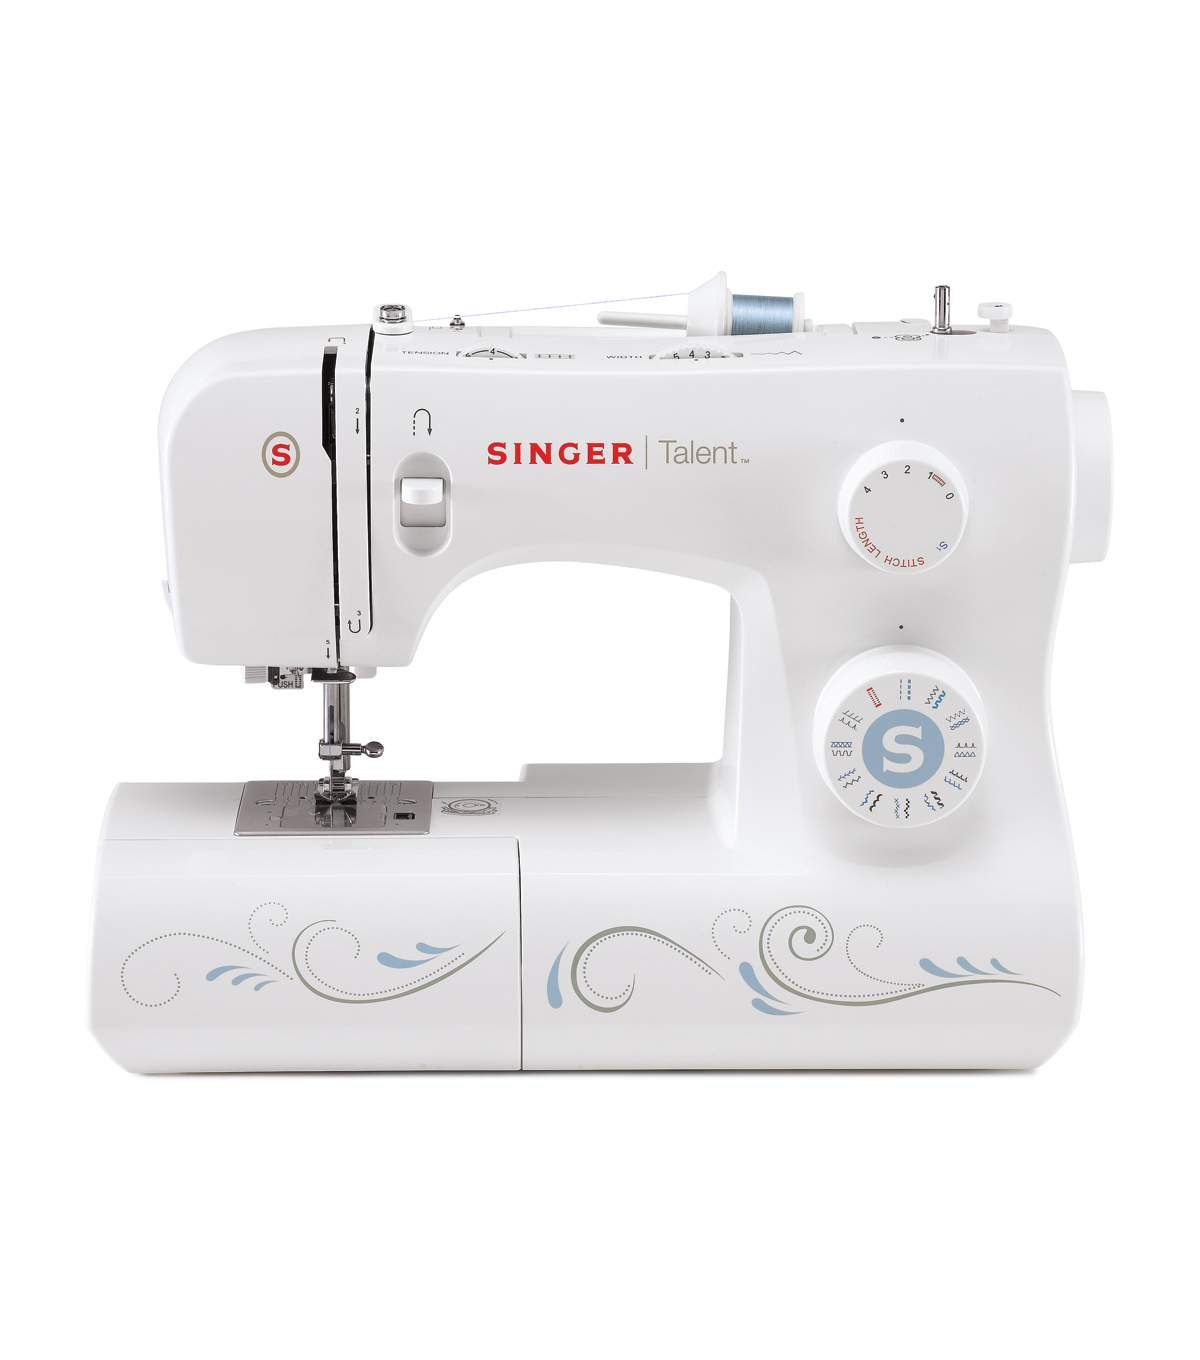 Singer 3323 Talent Essential Sewing Machine | Sewing ...